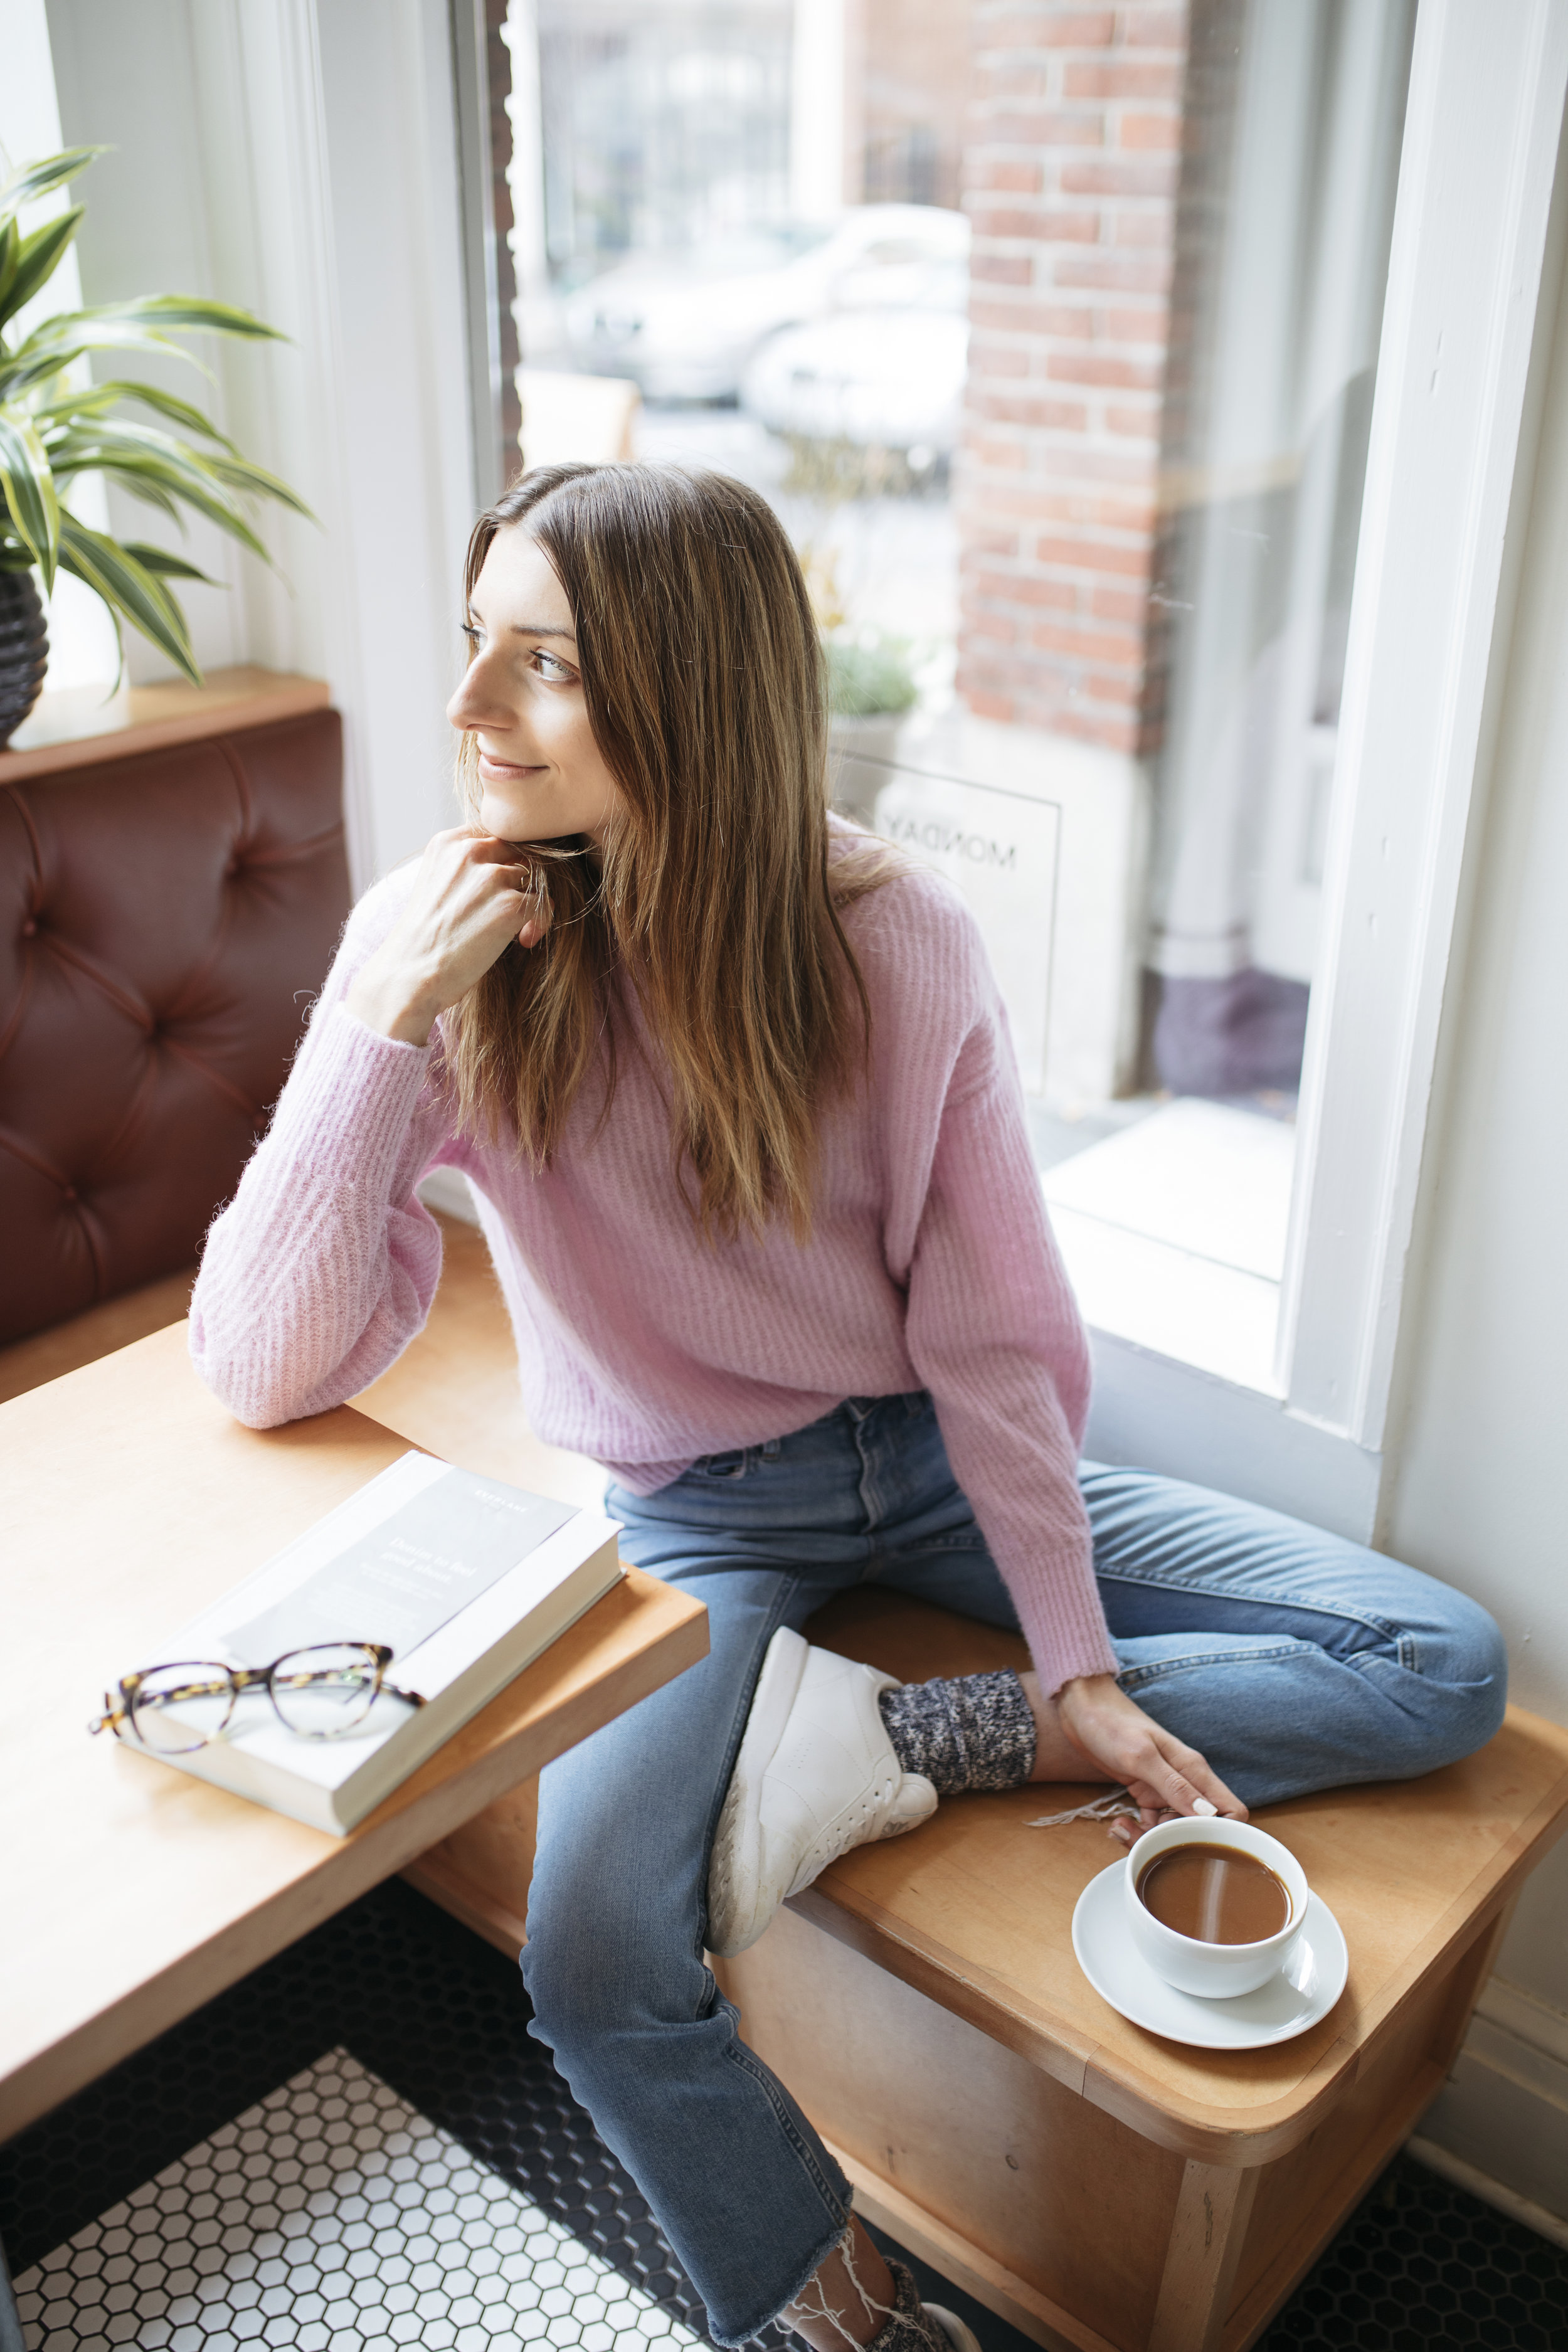 Wearing an ethically made pink sweater, Emily drinks coffee and writes about how to be a better ethical shopper. Read this blog for ethical shopping tips for Black Friday